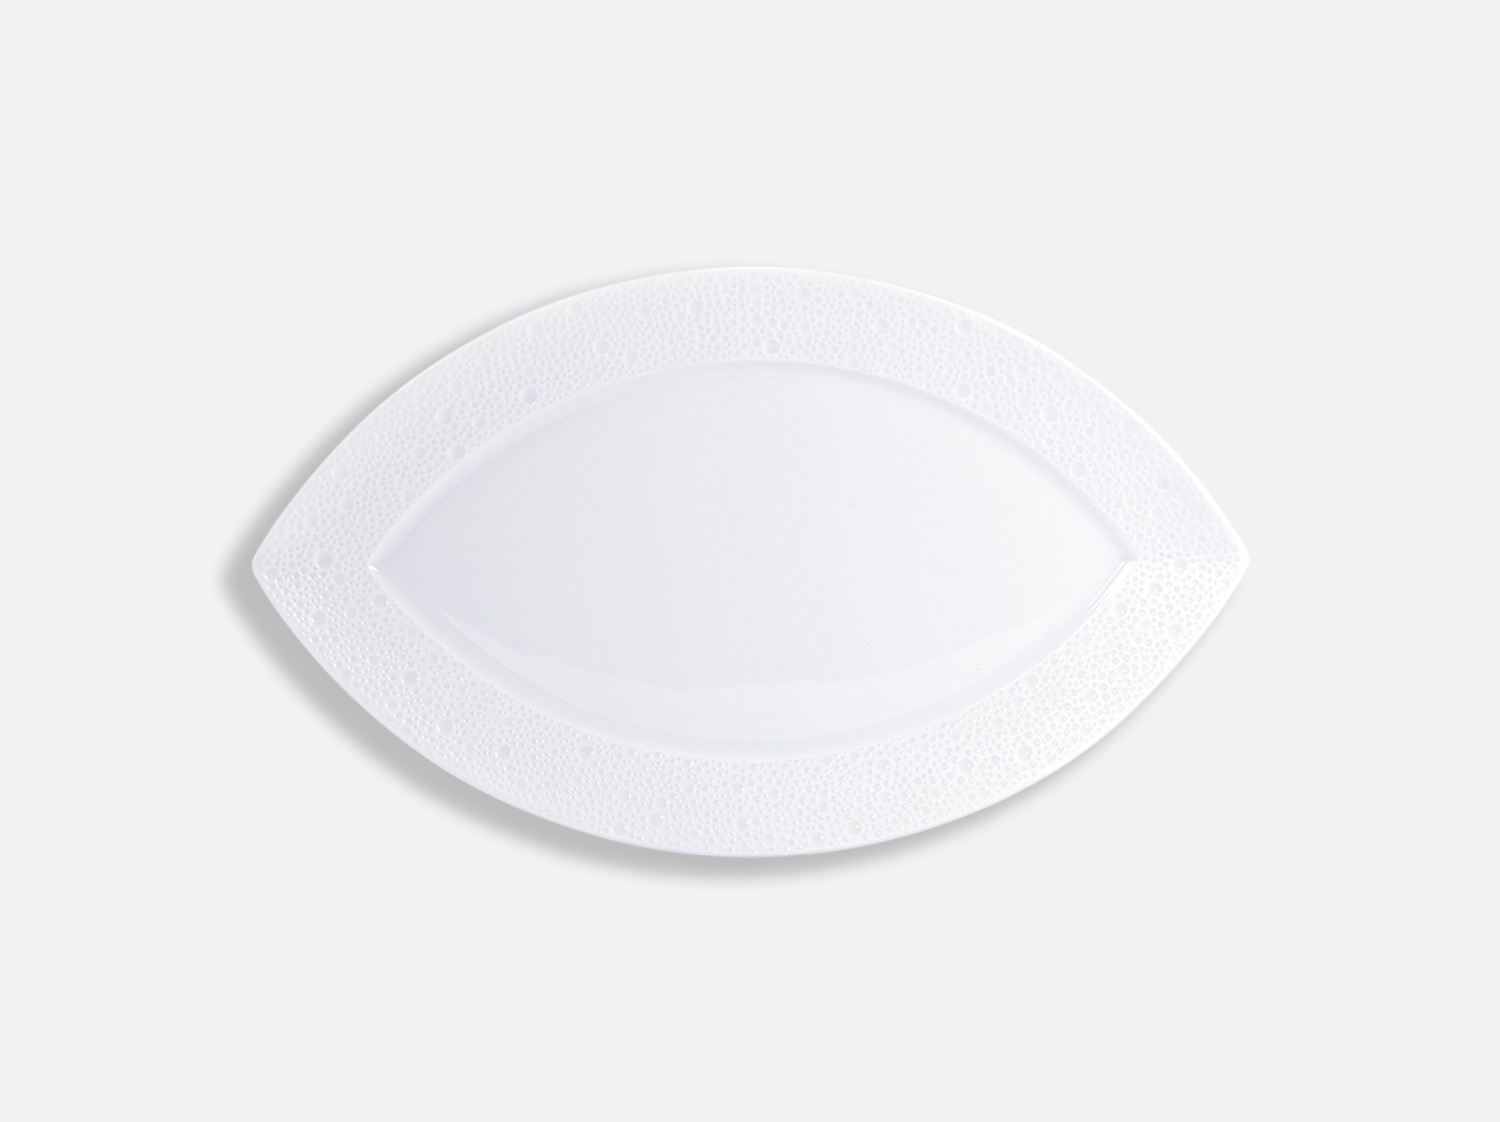 China Zanzibar plate 35.5 cm of the collection Ecume blanc aile mat | Bernardaud